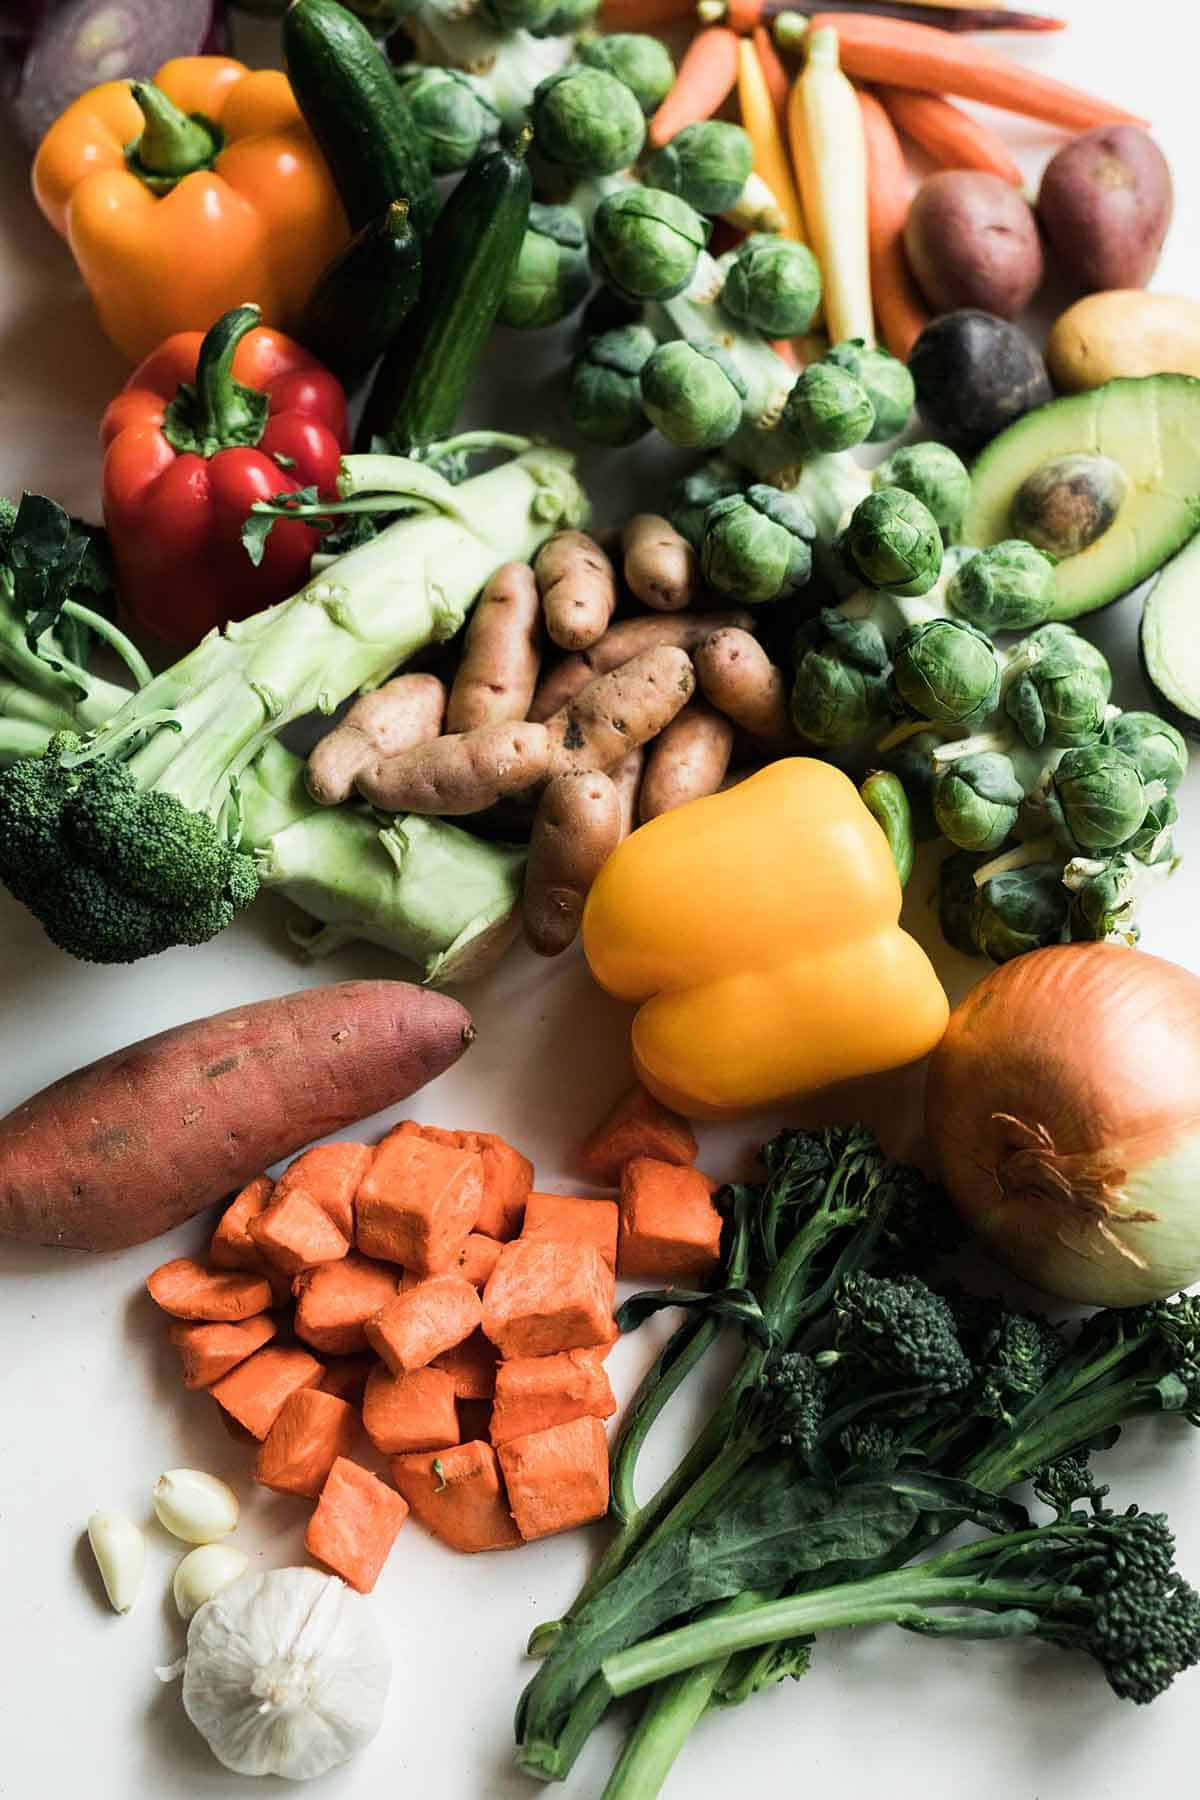 A large spread of colourful vegetables from a vegan grocery list including sweet potato, bell peppers, onion, broccoli, brussel sprouts, carrots, avocado, and zucchini.